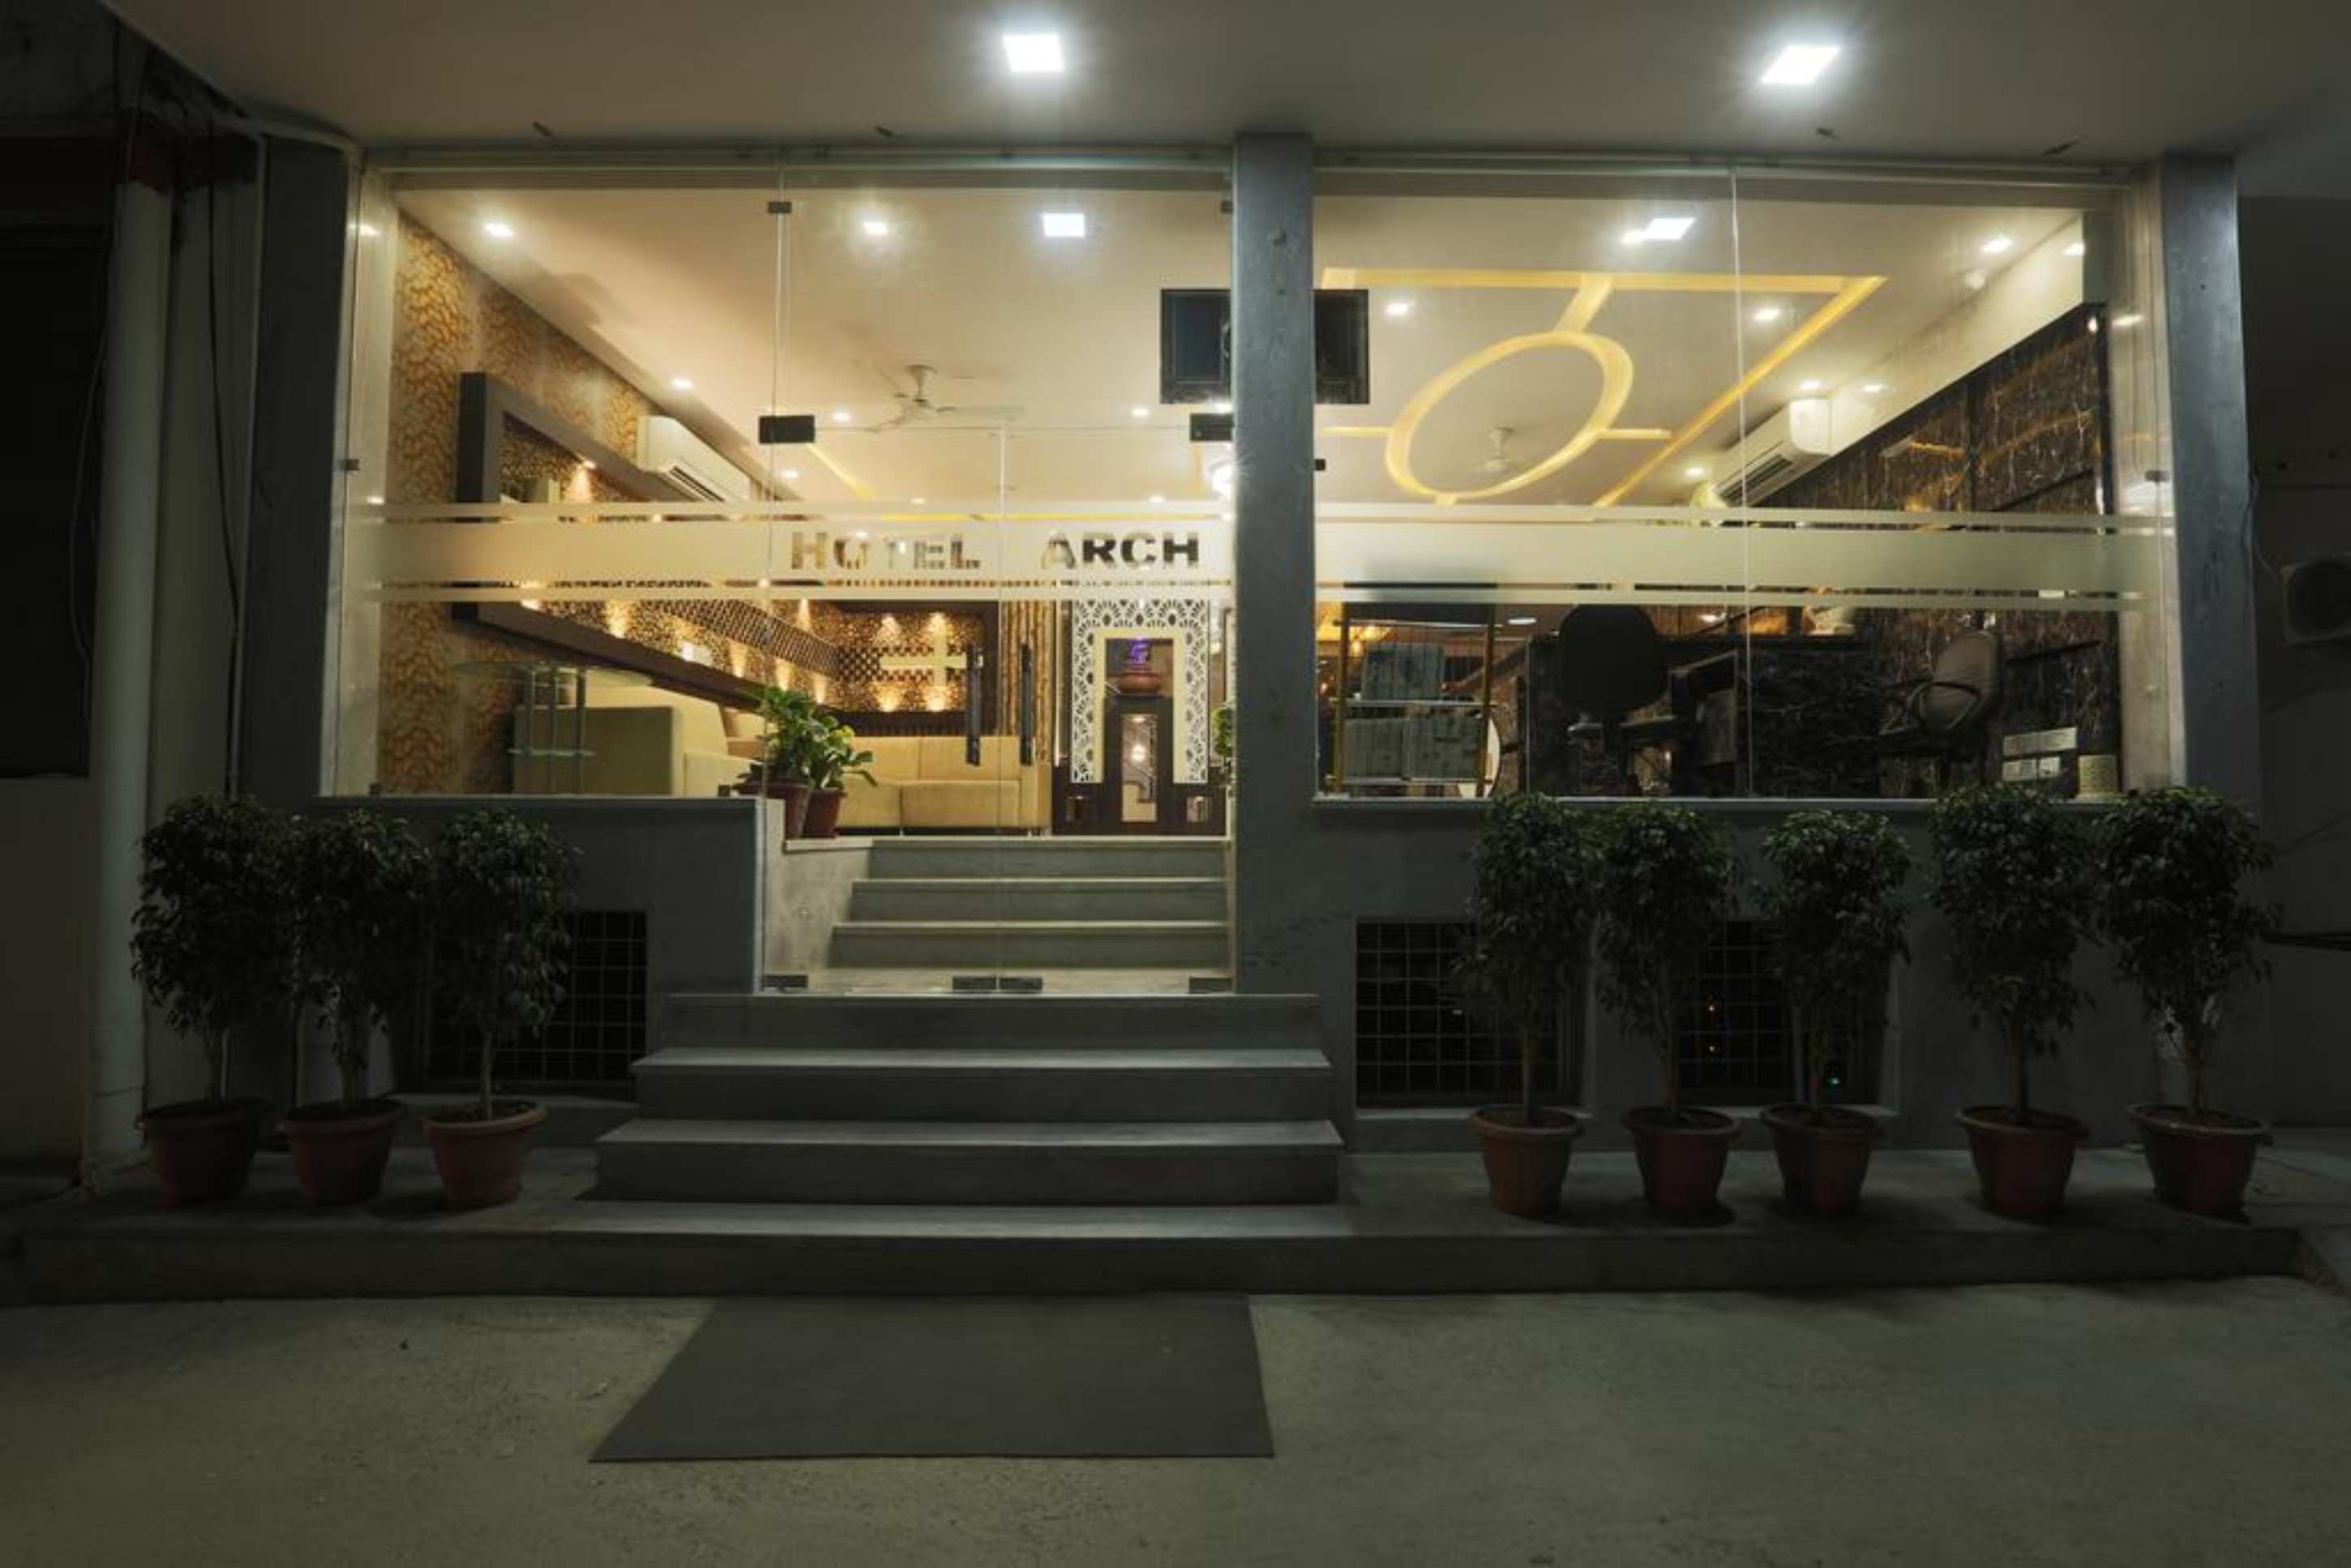 Airport Hotel Arch New Delhi, West